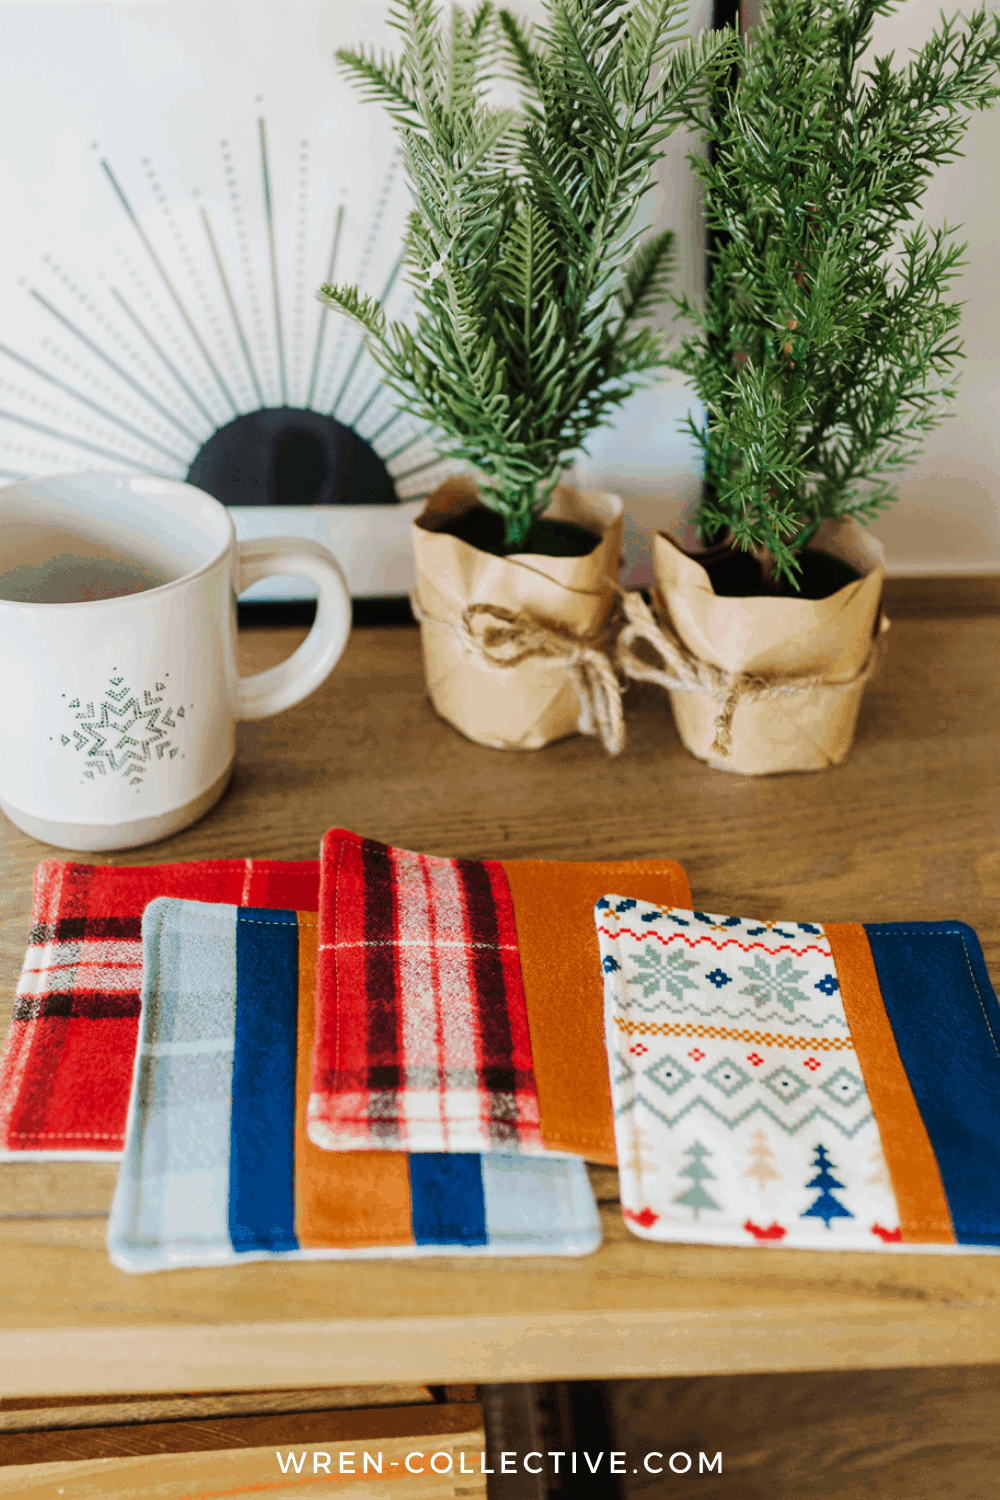 Coasters are the perfect fabric scrap project. All four coasters are laid out in front of a winter ceramic mug and two artificial evergreen trees. Free coaster tutorial from wren-collective.com